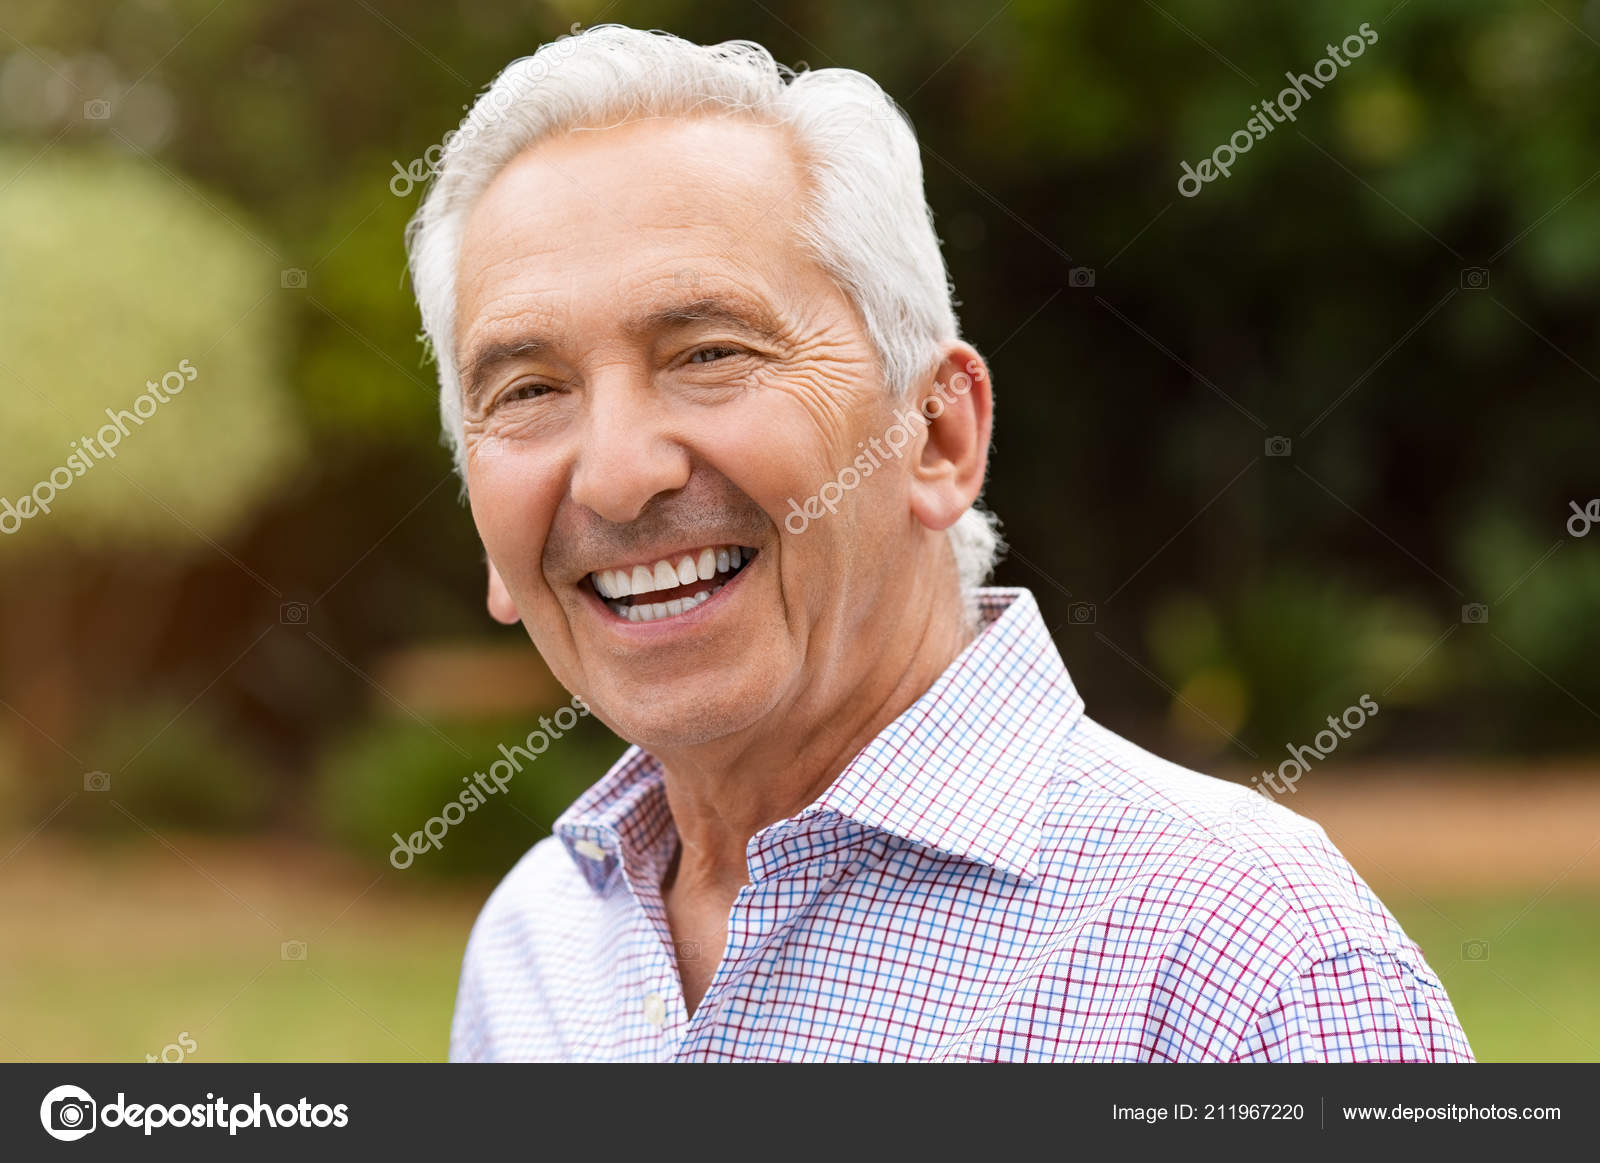 f2574d558 Portrait Cheerful Old Man Outdoor Smiling Retired Man Looking Camera ...